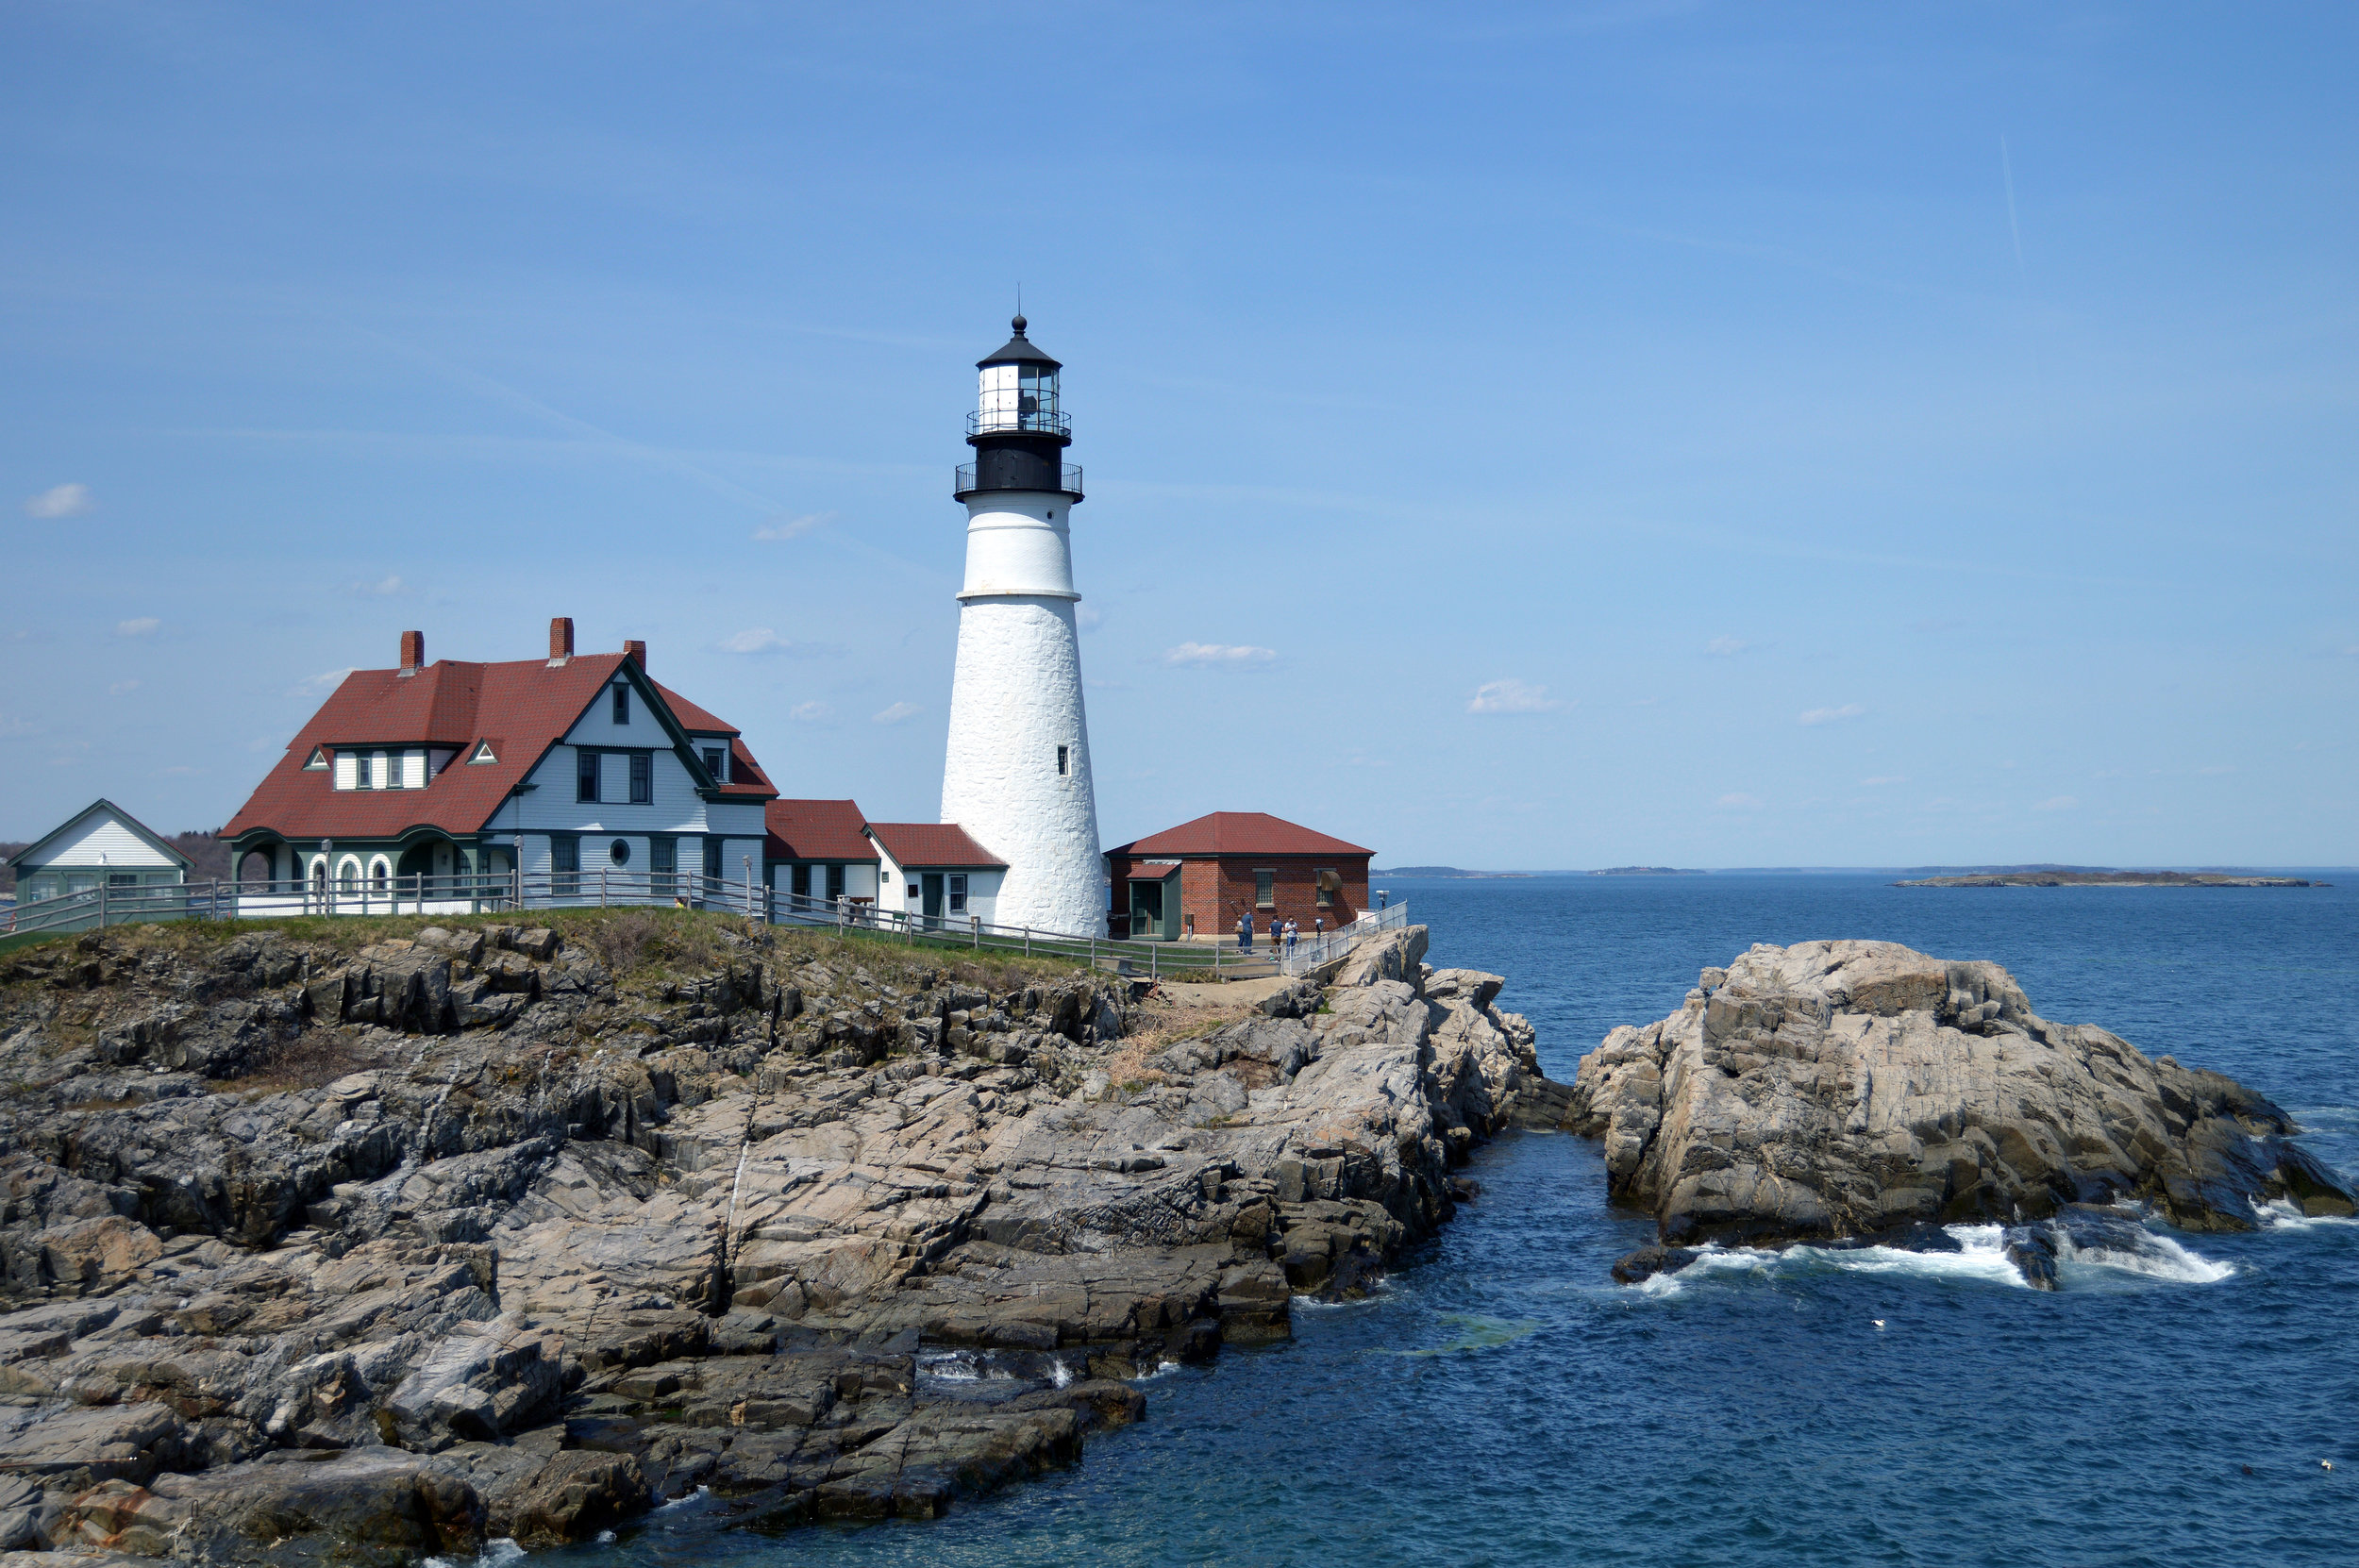 Portland Headlight (Cape Elizabeth, Maine)